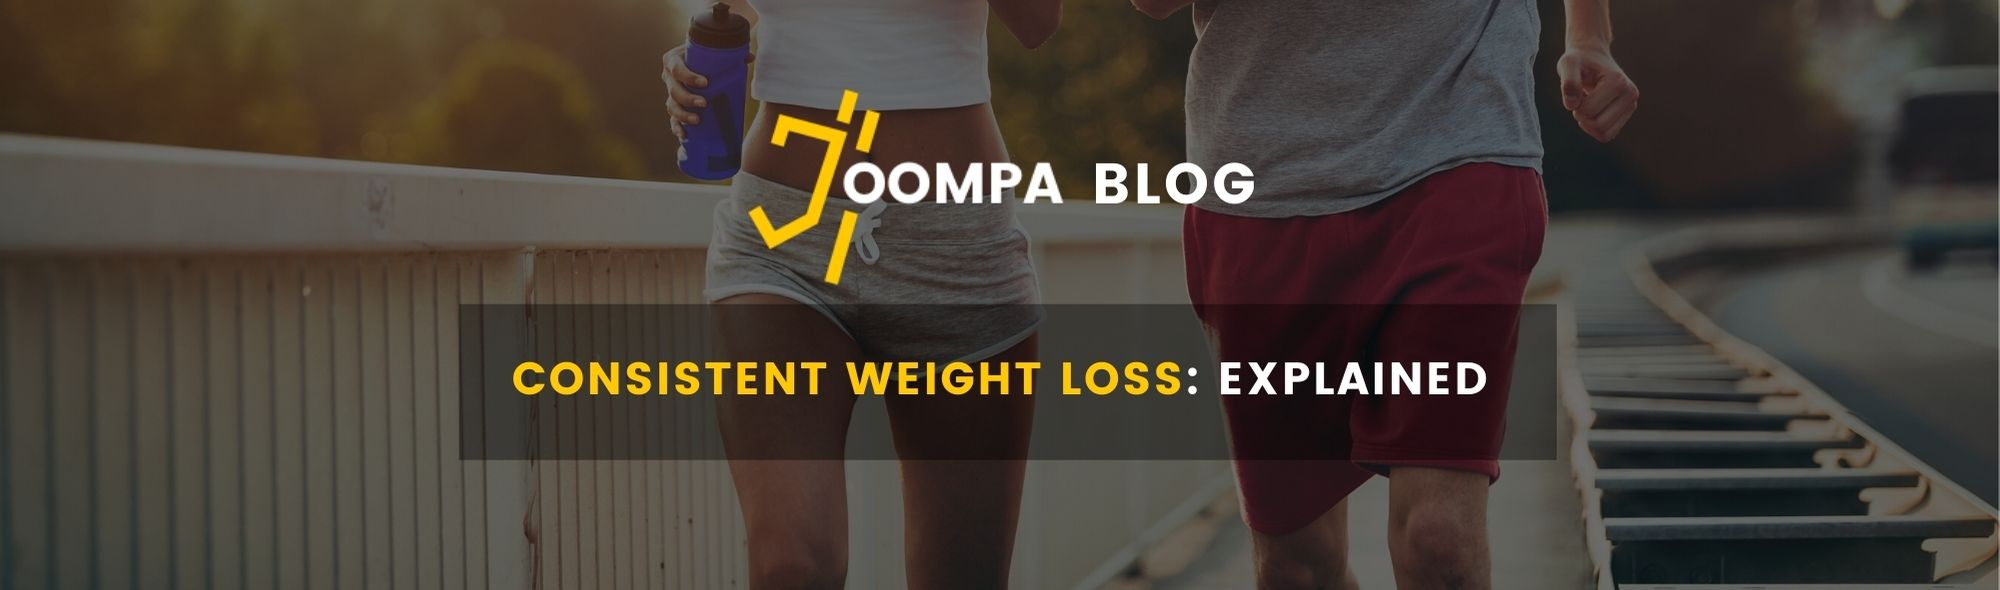 Consistent Weight Loss: Explained